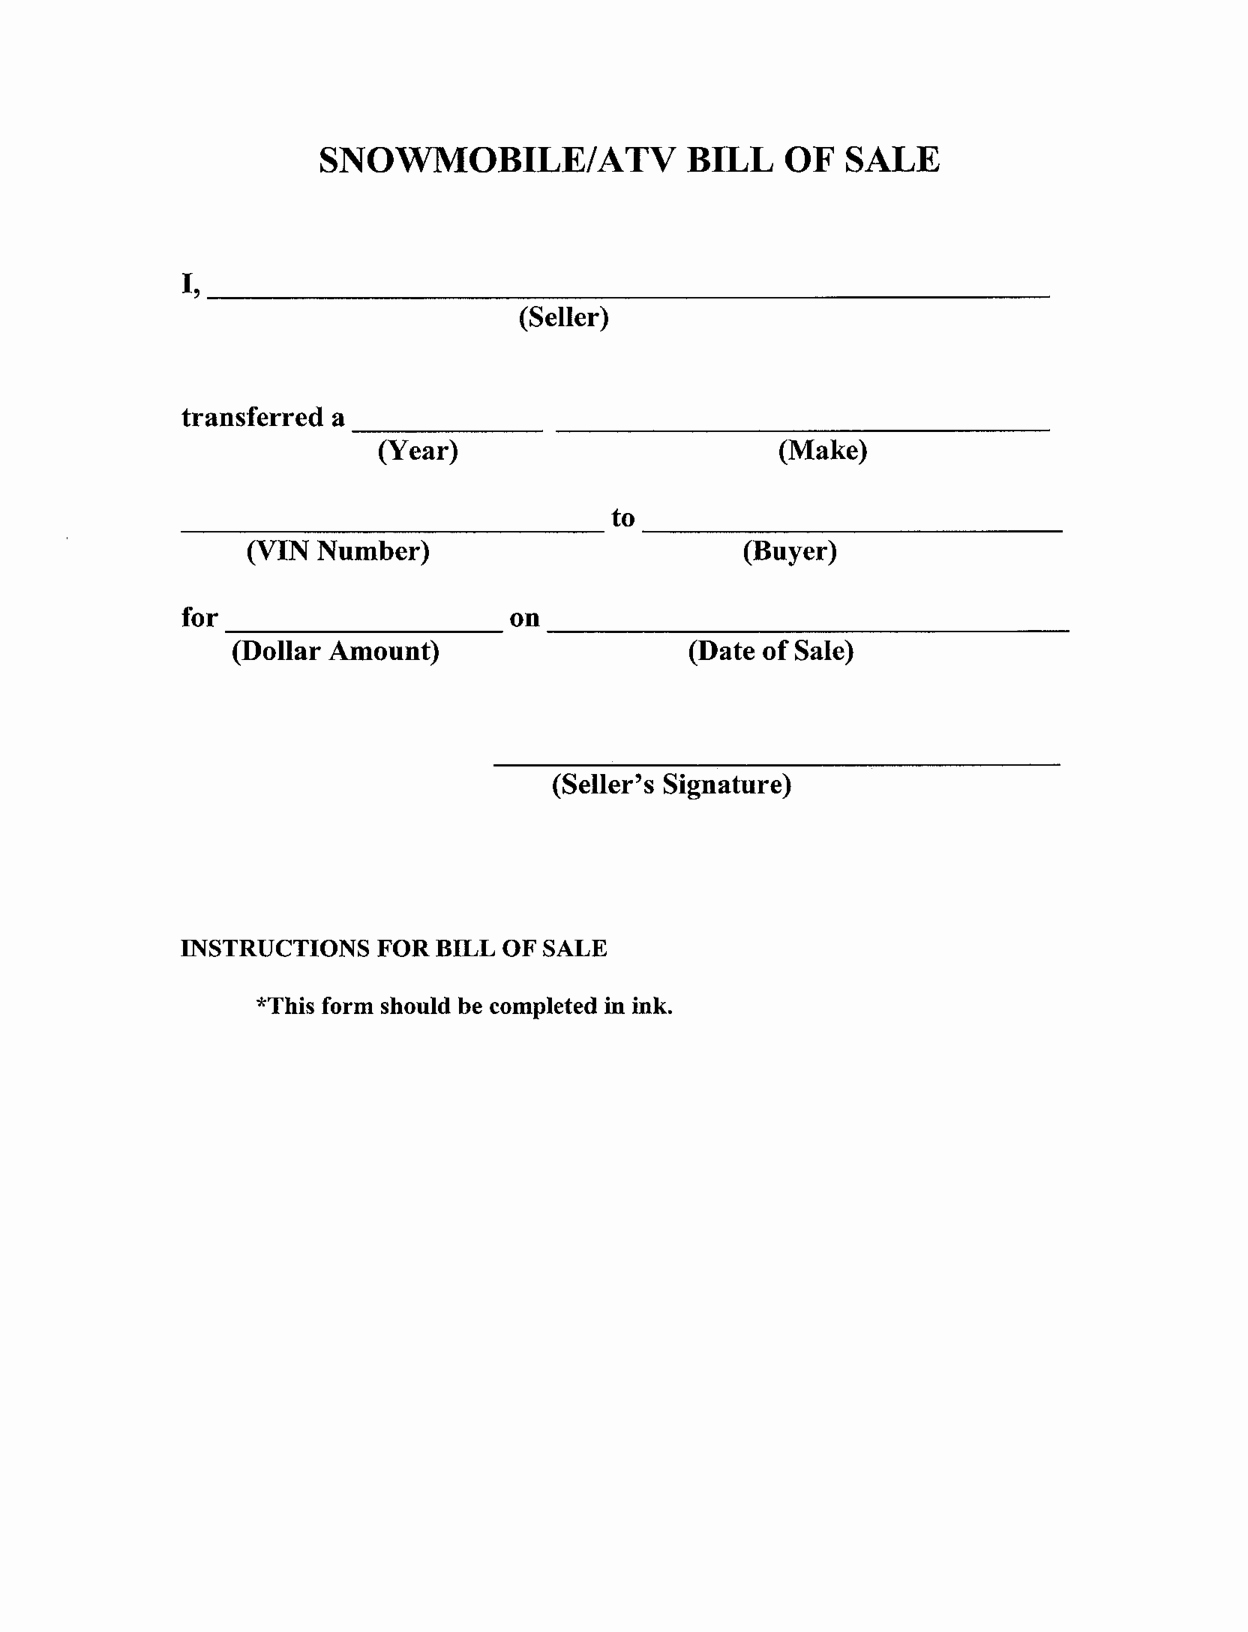 Free Bill Of Sale Templates New Free Printable Bill Of Sale Templates form Generic